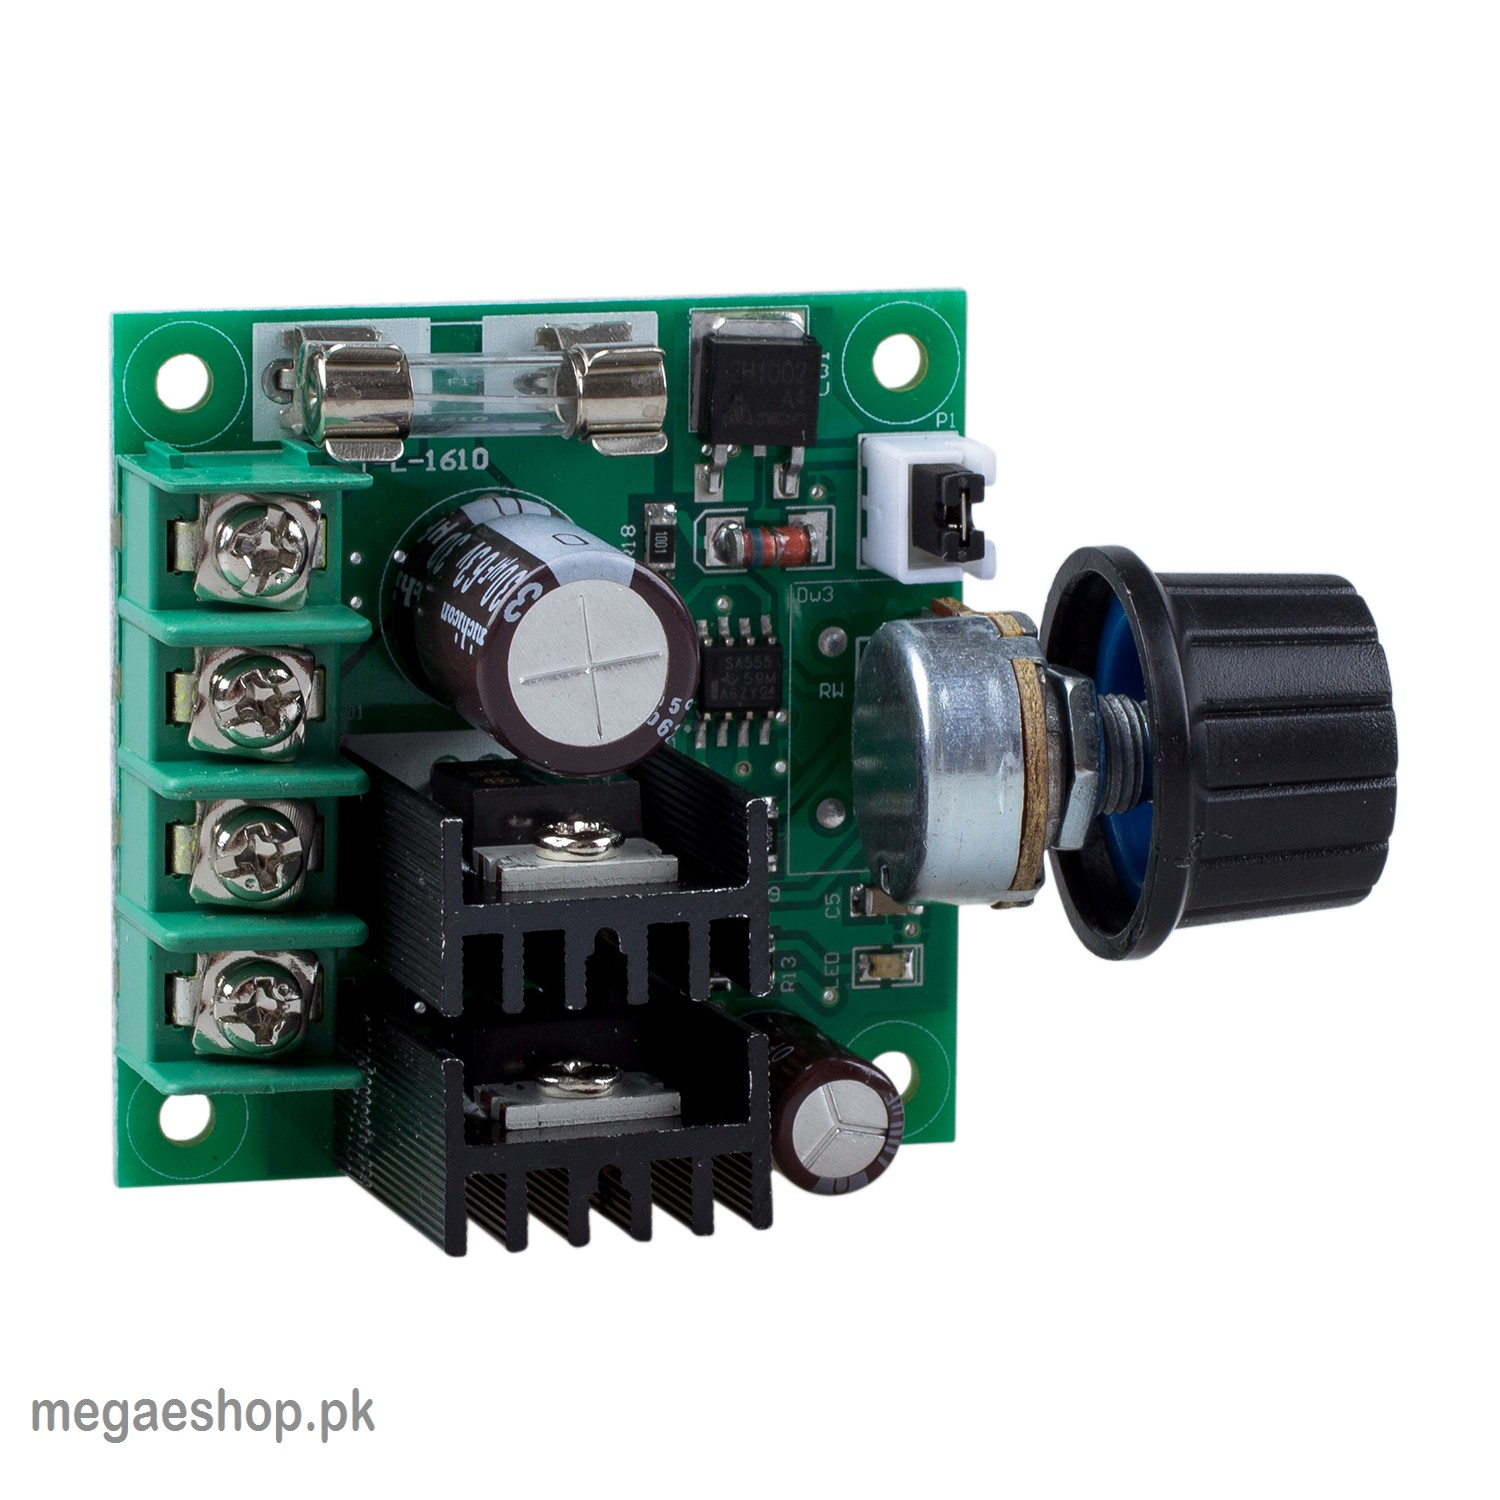 Pwm 10a 12v 40v Dc Motor Speed Controller Buy In Pakistan